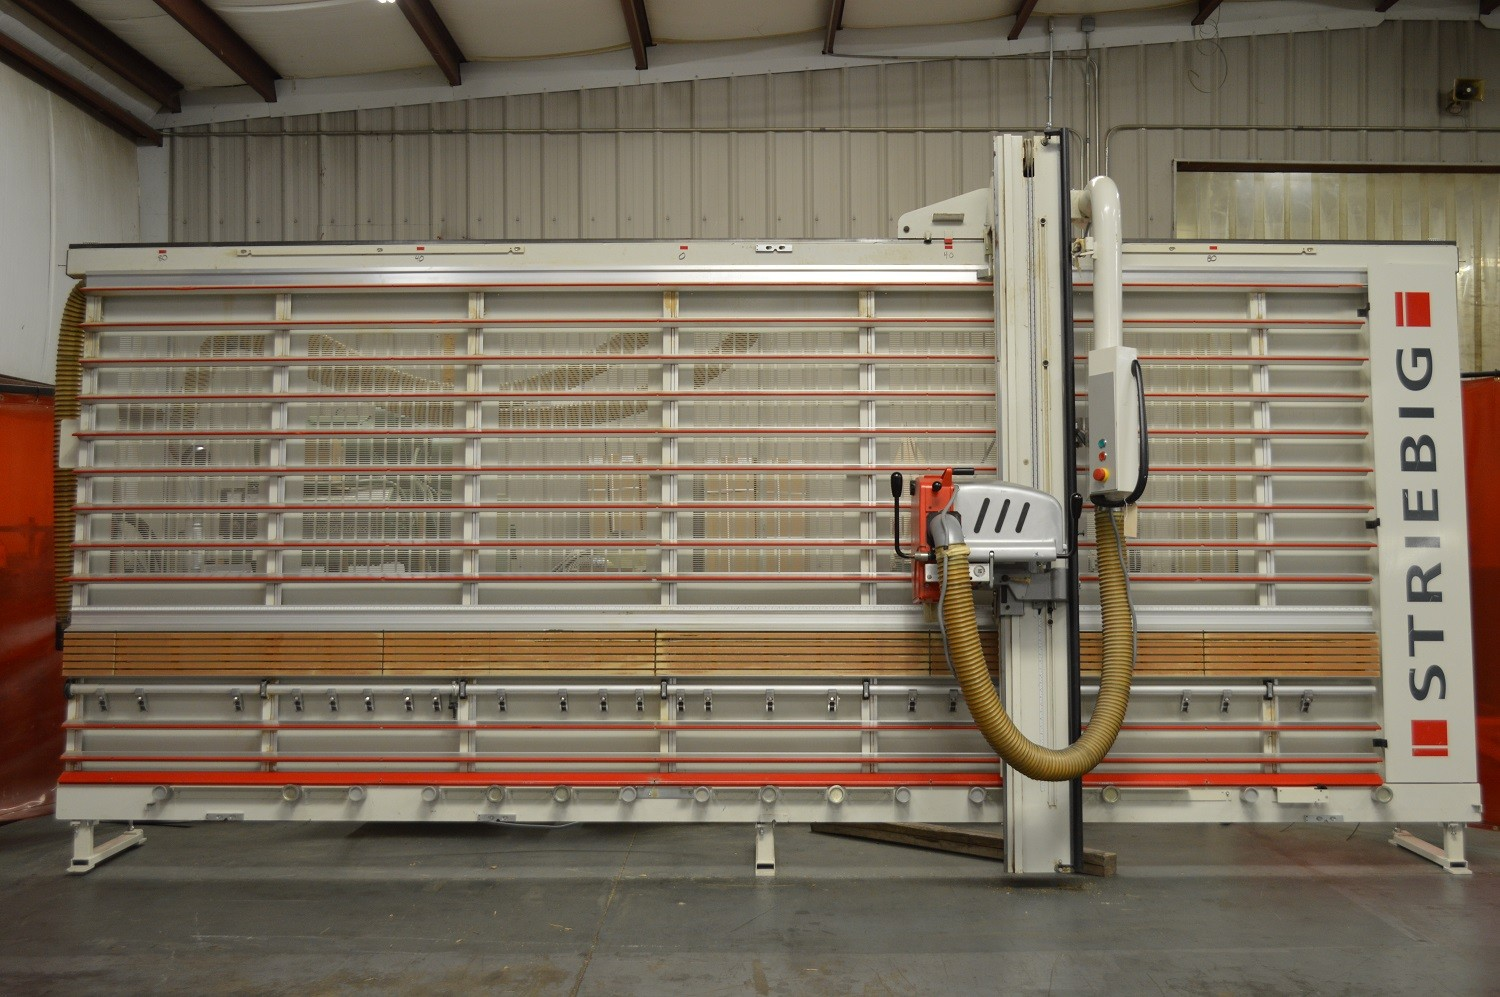 Used Striebig Vertical Panel Saw - Model: Compact Plus 5207 - Photo 1